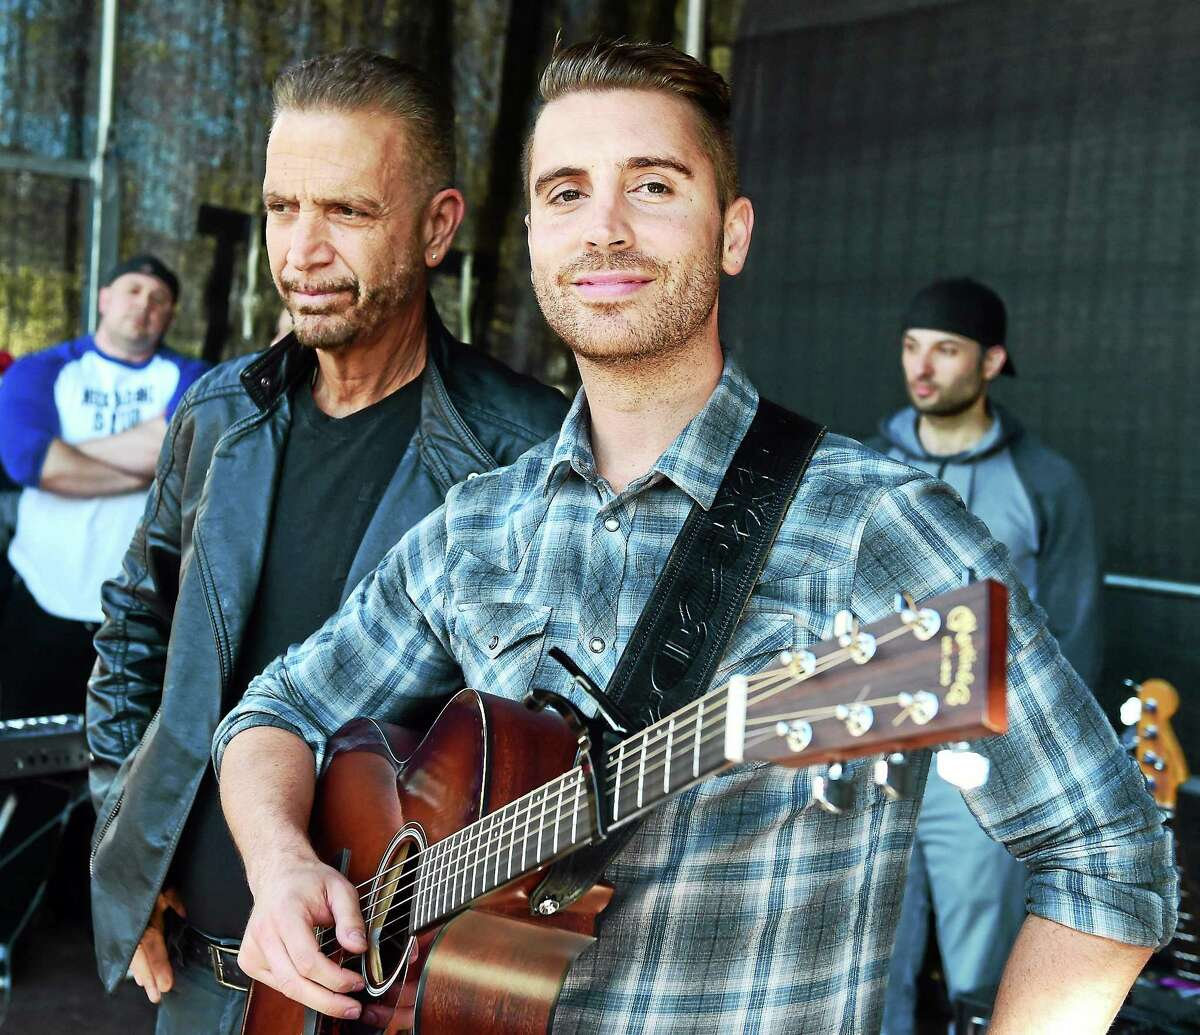 American Idol's Nick Fradiani of Guilford, right, with his father Nick Fradiani III before they perform a concert on the Guilford Green after a welcome home parade May 1 in Guilford.